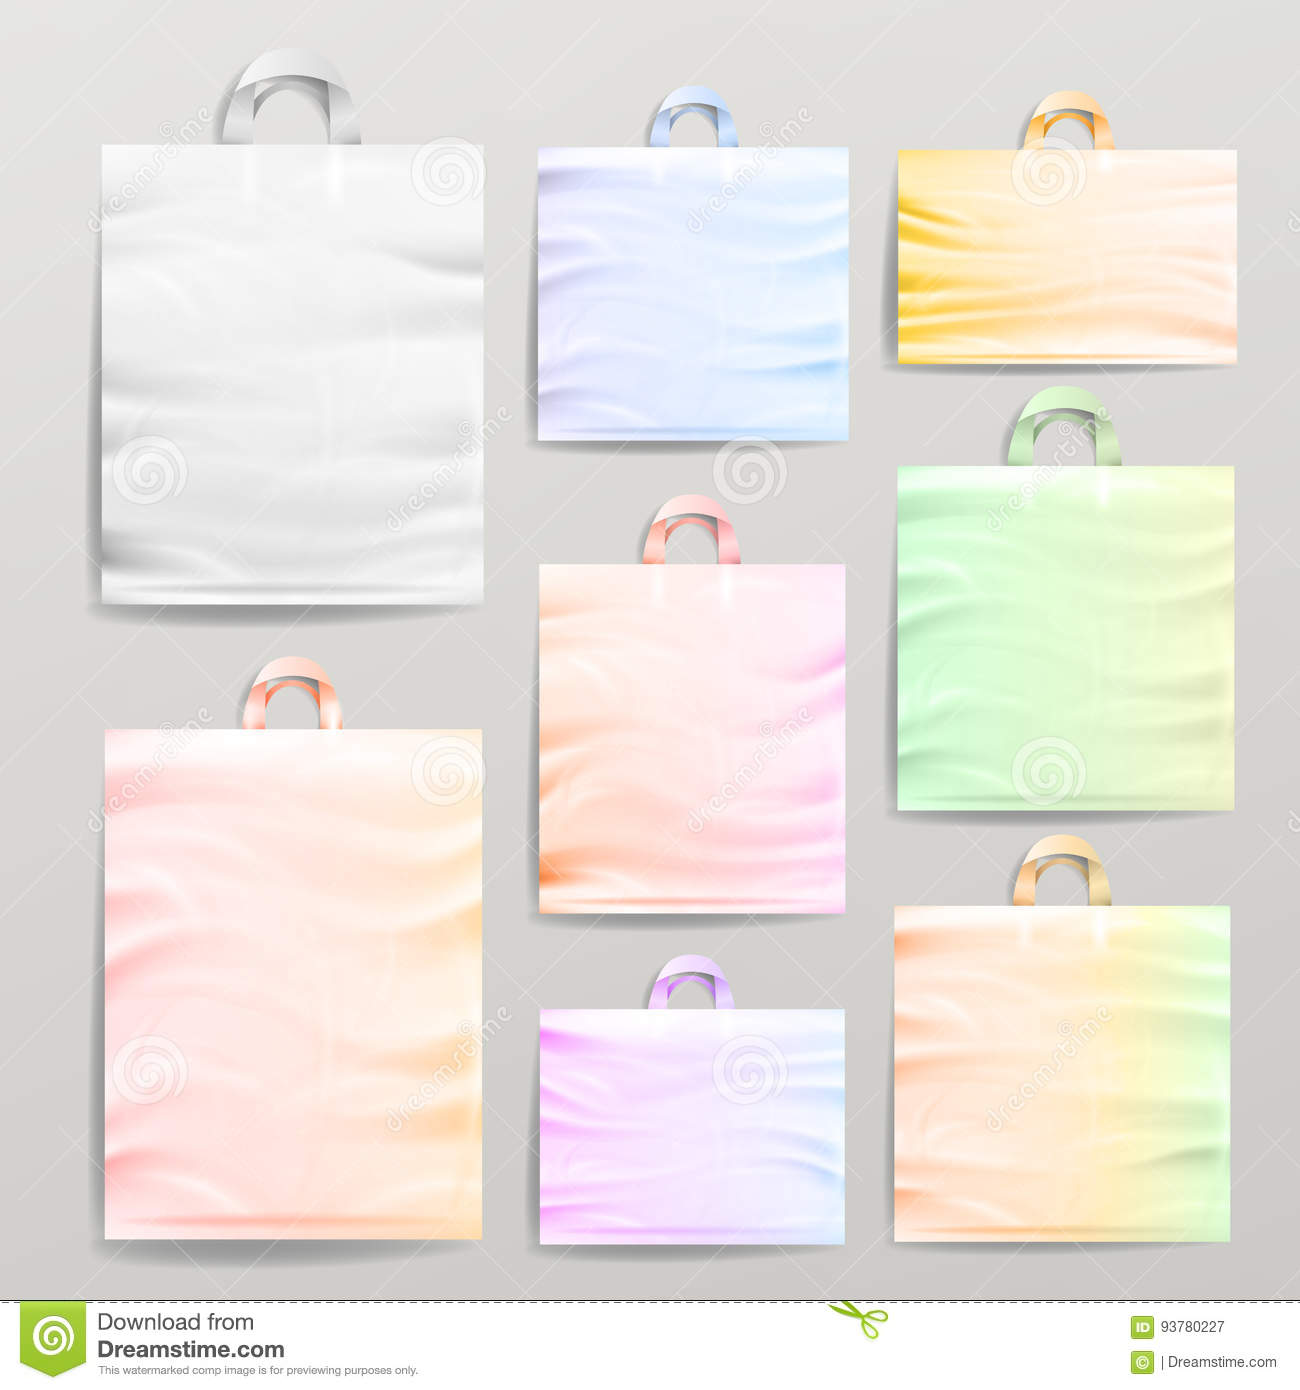 Plastic Shopping Realistic Bags Set With Handles. Colorful Empty Reusable Close Up Mock Up. Vector Illustration